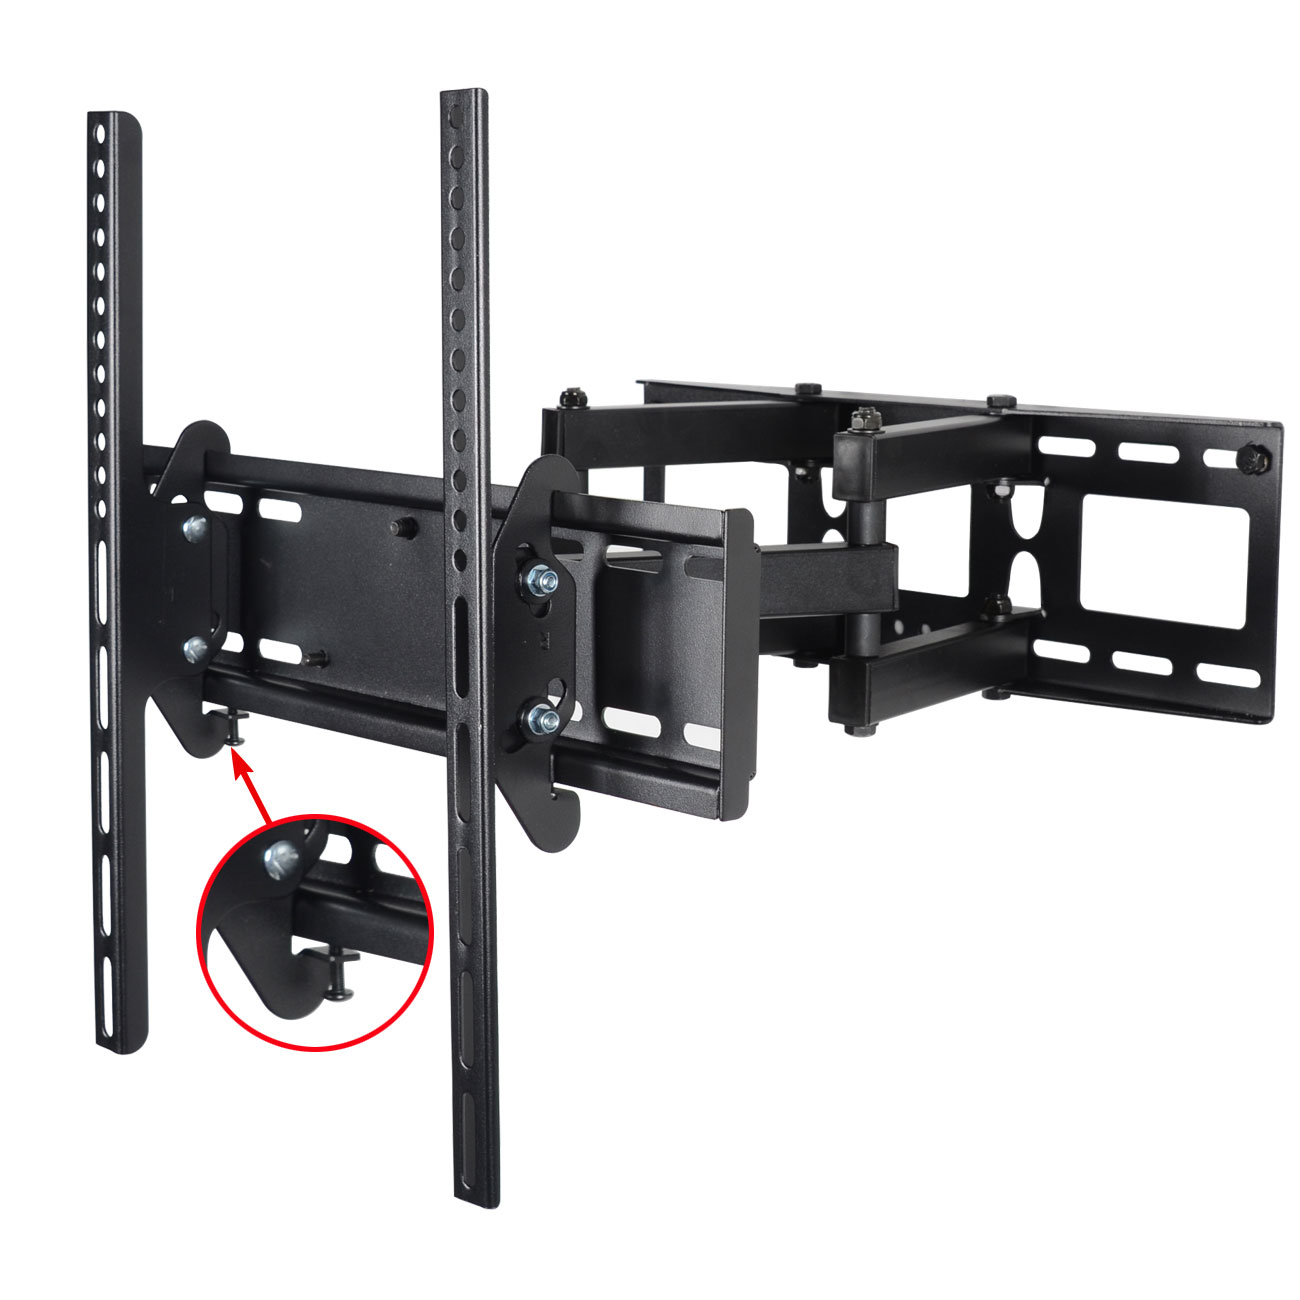 "VideoSecu Articulating TV Wall Mount 26 32 39 40 42 46 47 48 50 55"" LED LCD Plasma HDTV Display Tilt Swivel Bracket BGW"